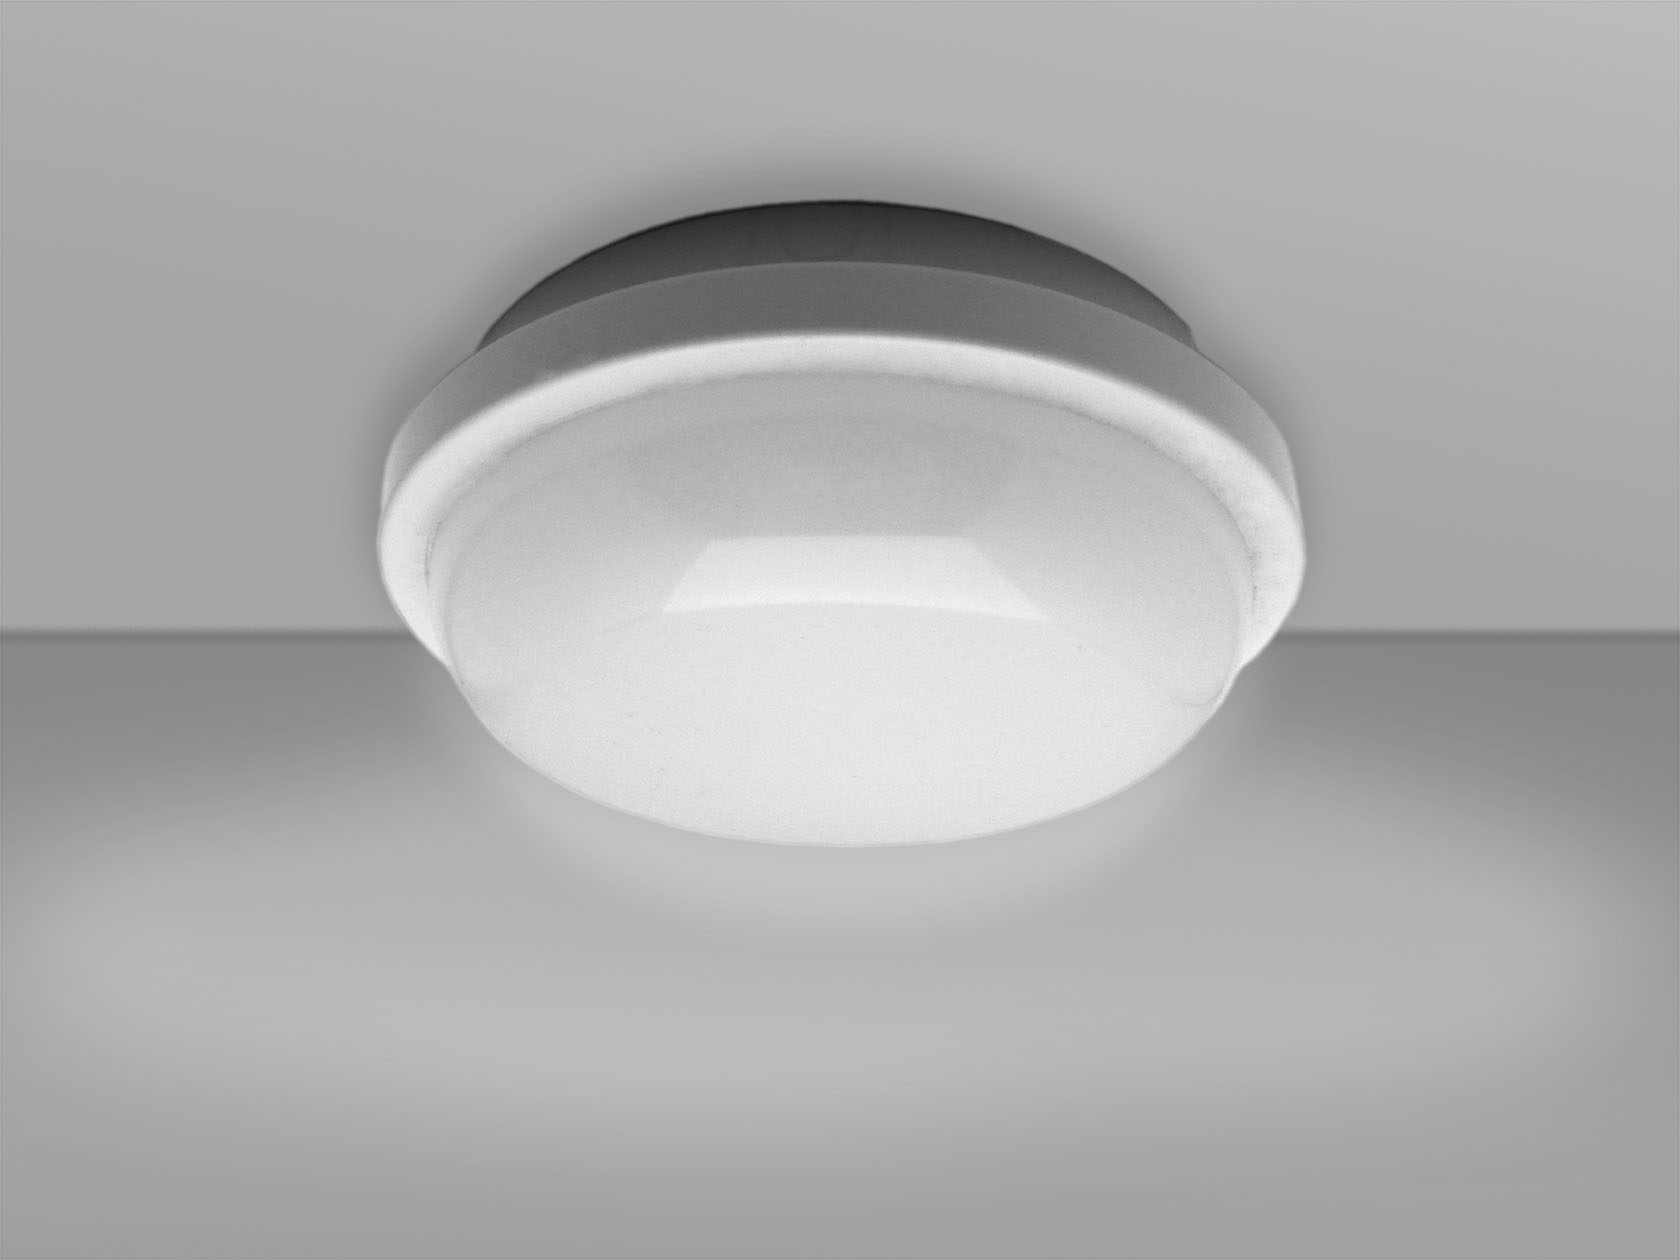 Plafoniera Quadra Led 63 : Plt nobile sistemi di illuminazione a led